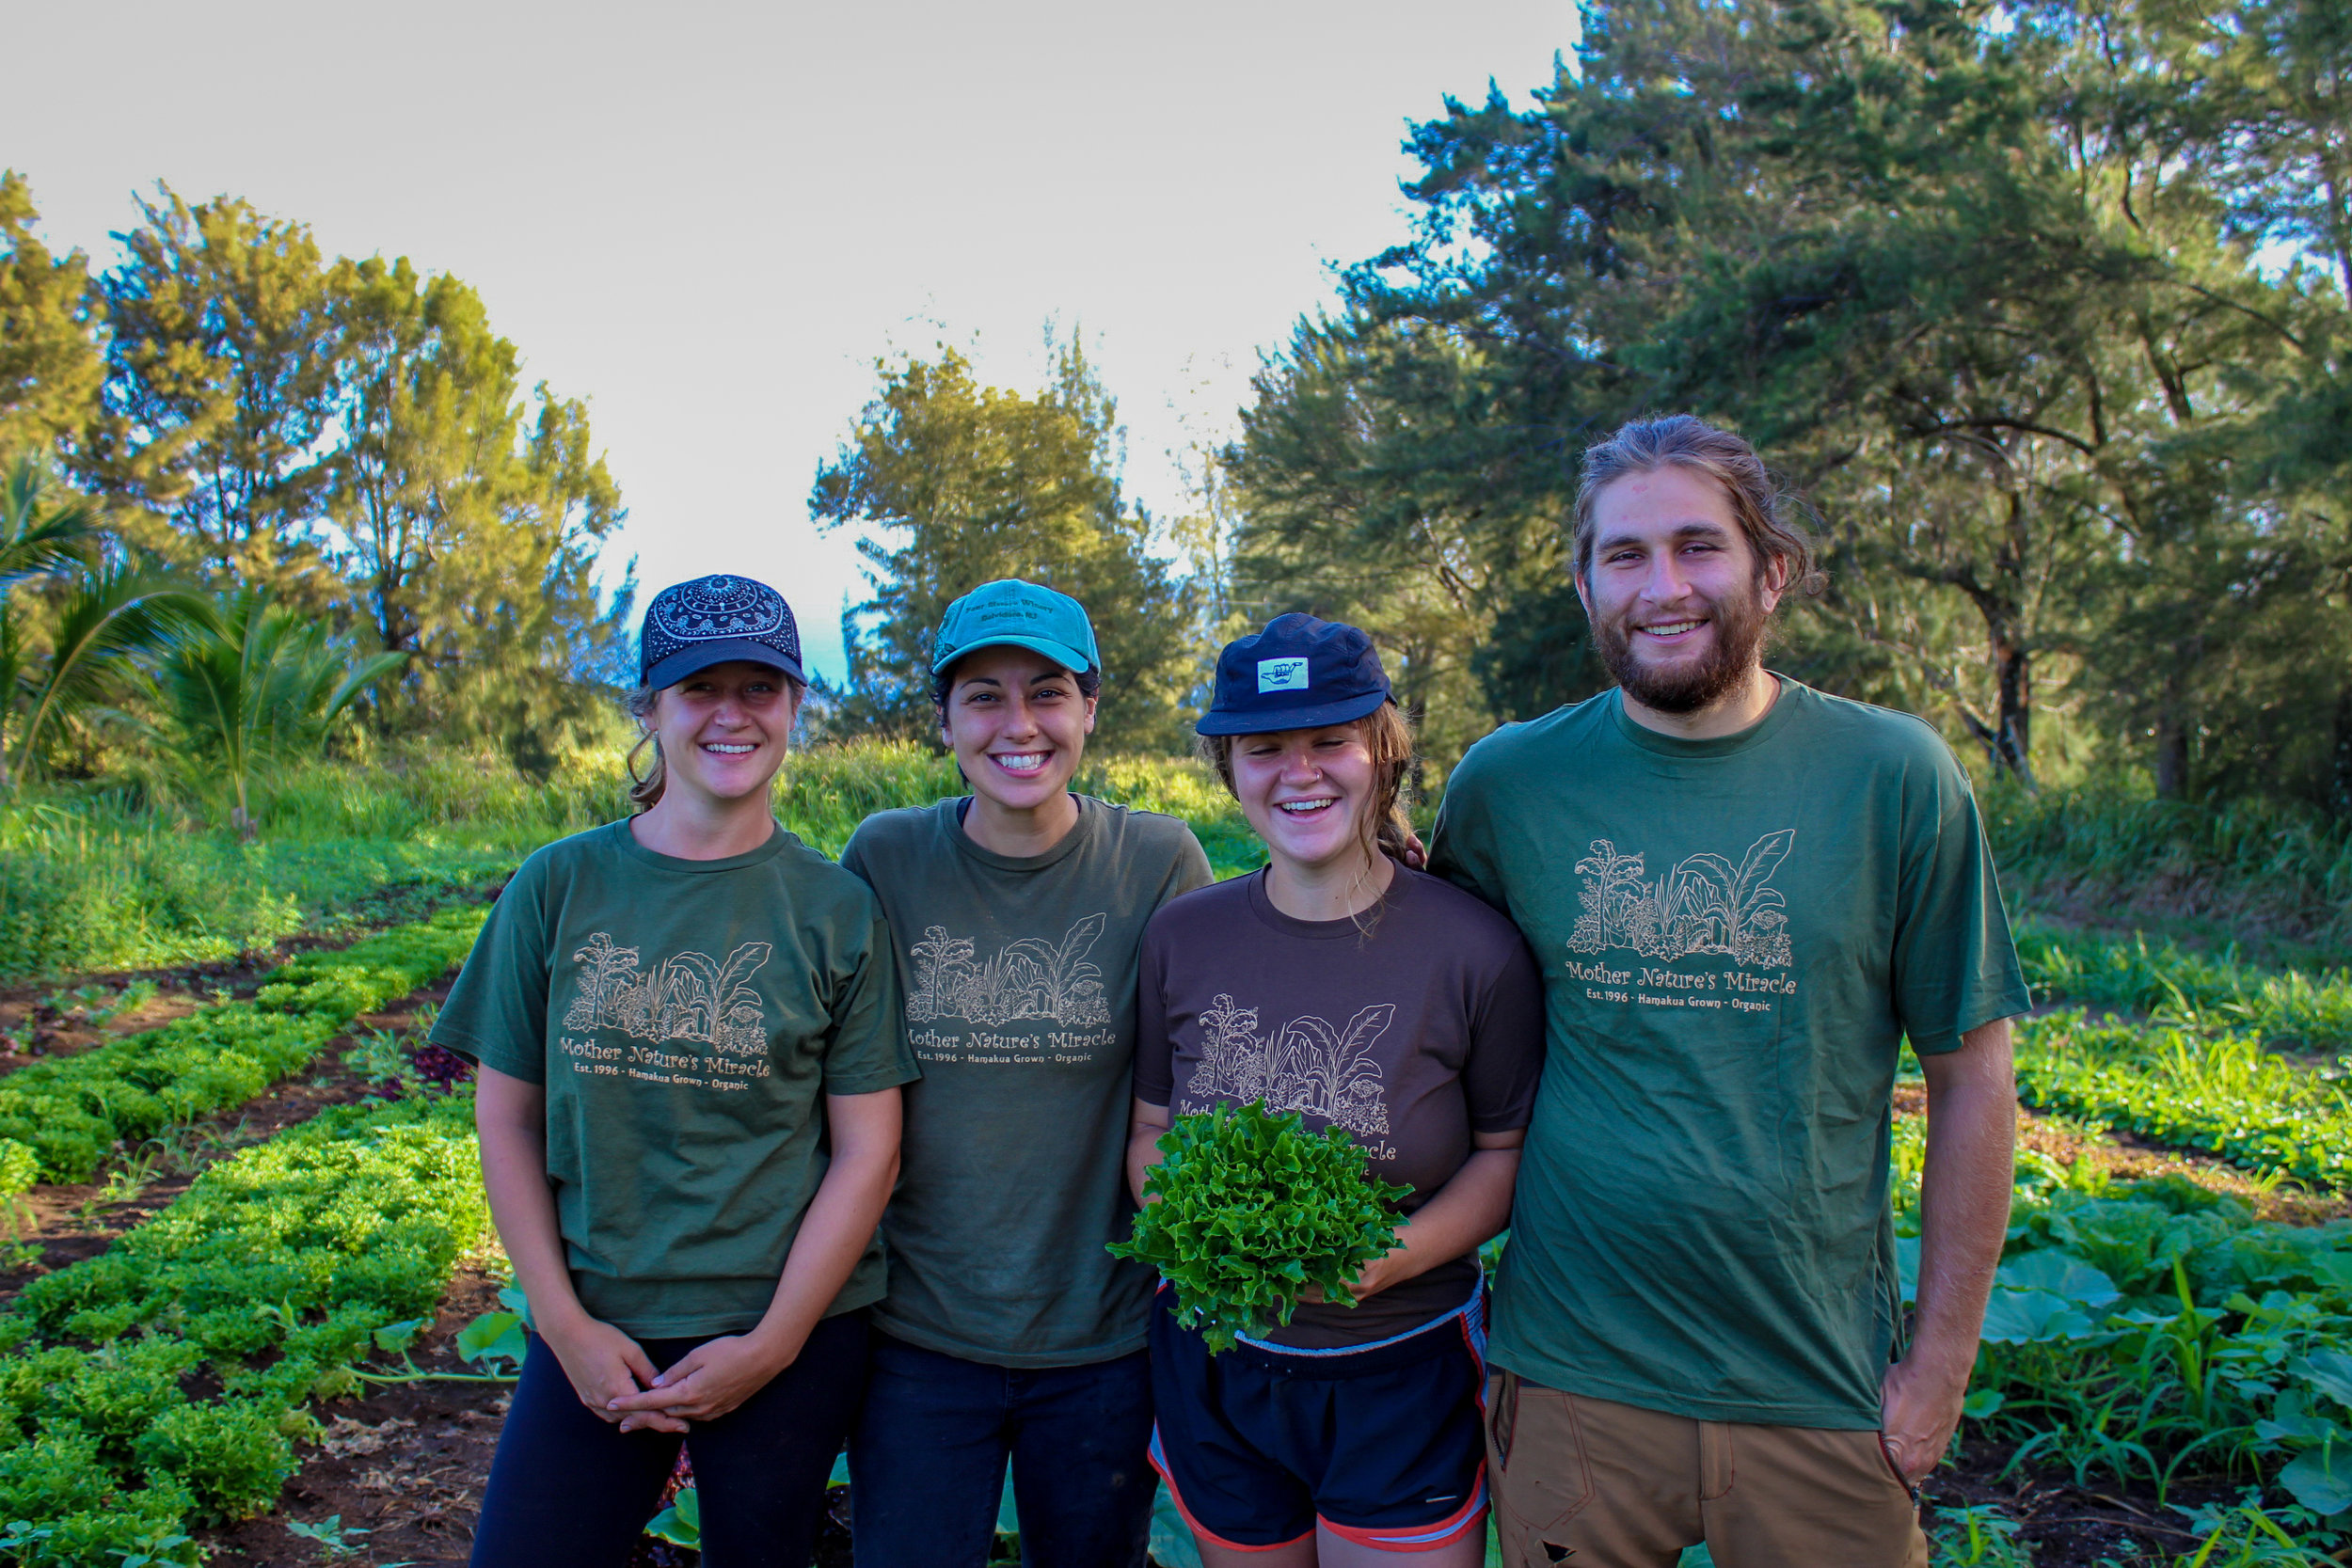 Mother Nature's Miracle team (L-R): Kelsey, Brandy, Jacki, and Dain picking lettuce on a harvest morning.